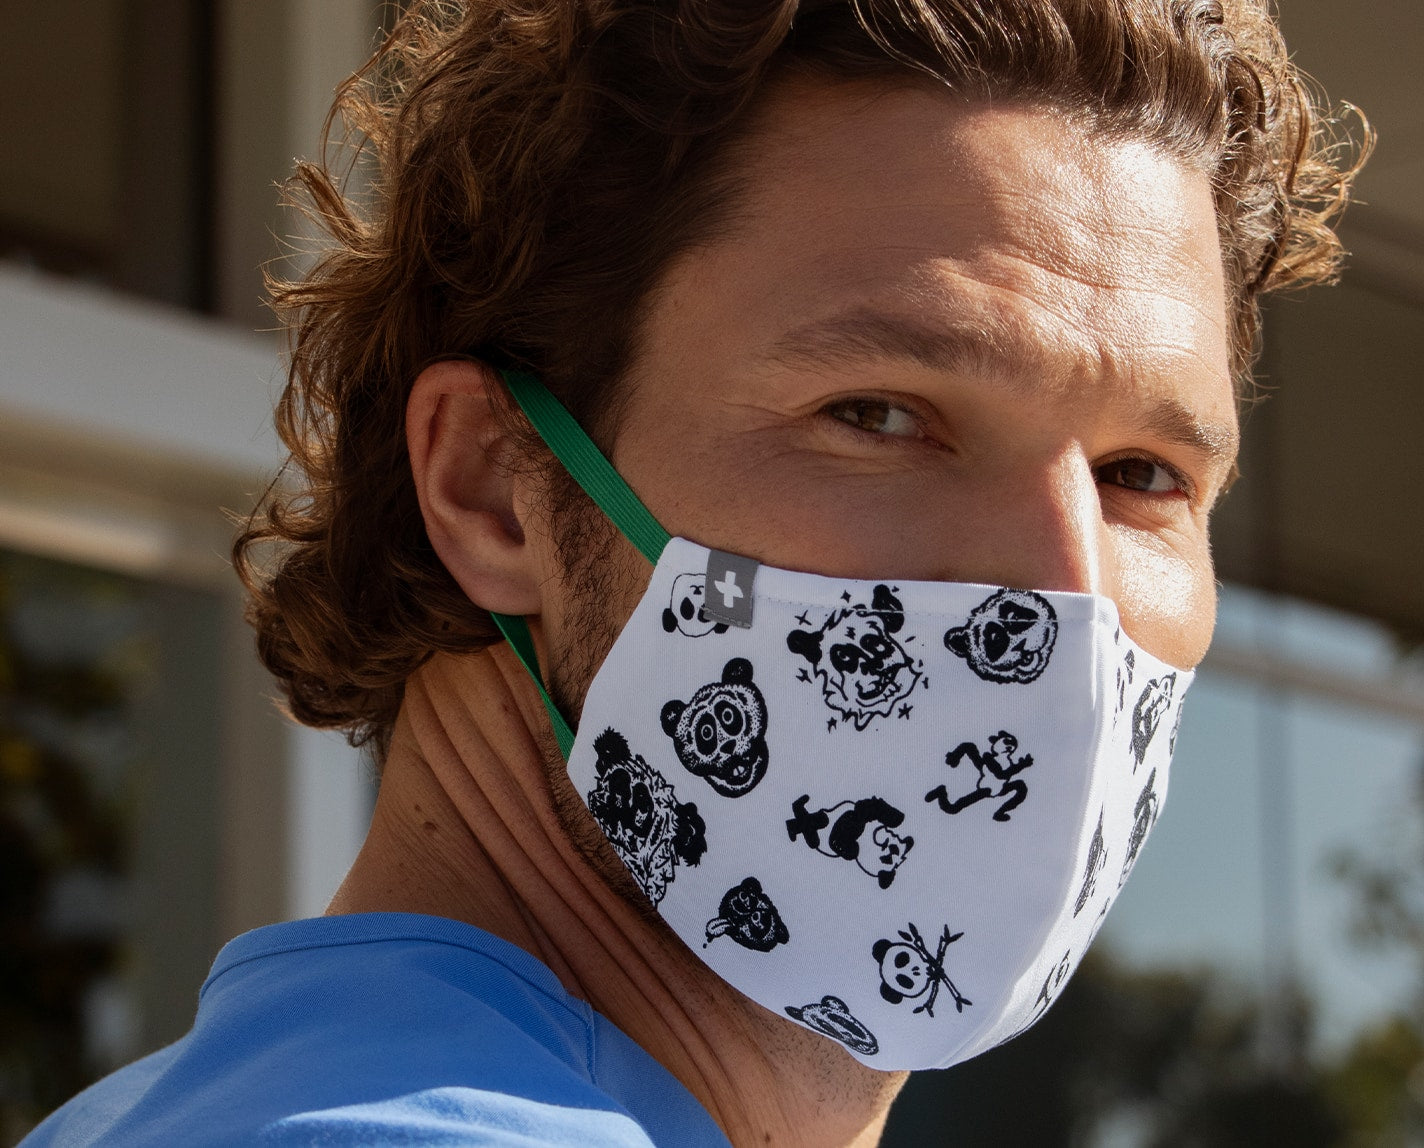 Exclusively designed by contemporary artist Rob Pruitt, this mask benefits the incredible organization RxArt, who's on a mission to help pediatric patients heal through the power of visual art.